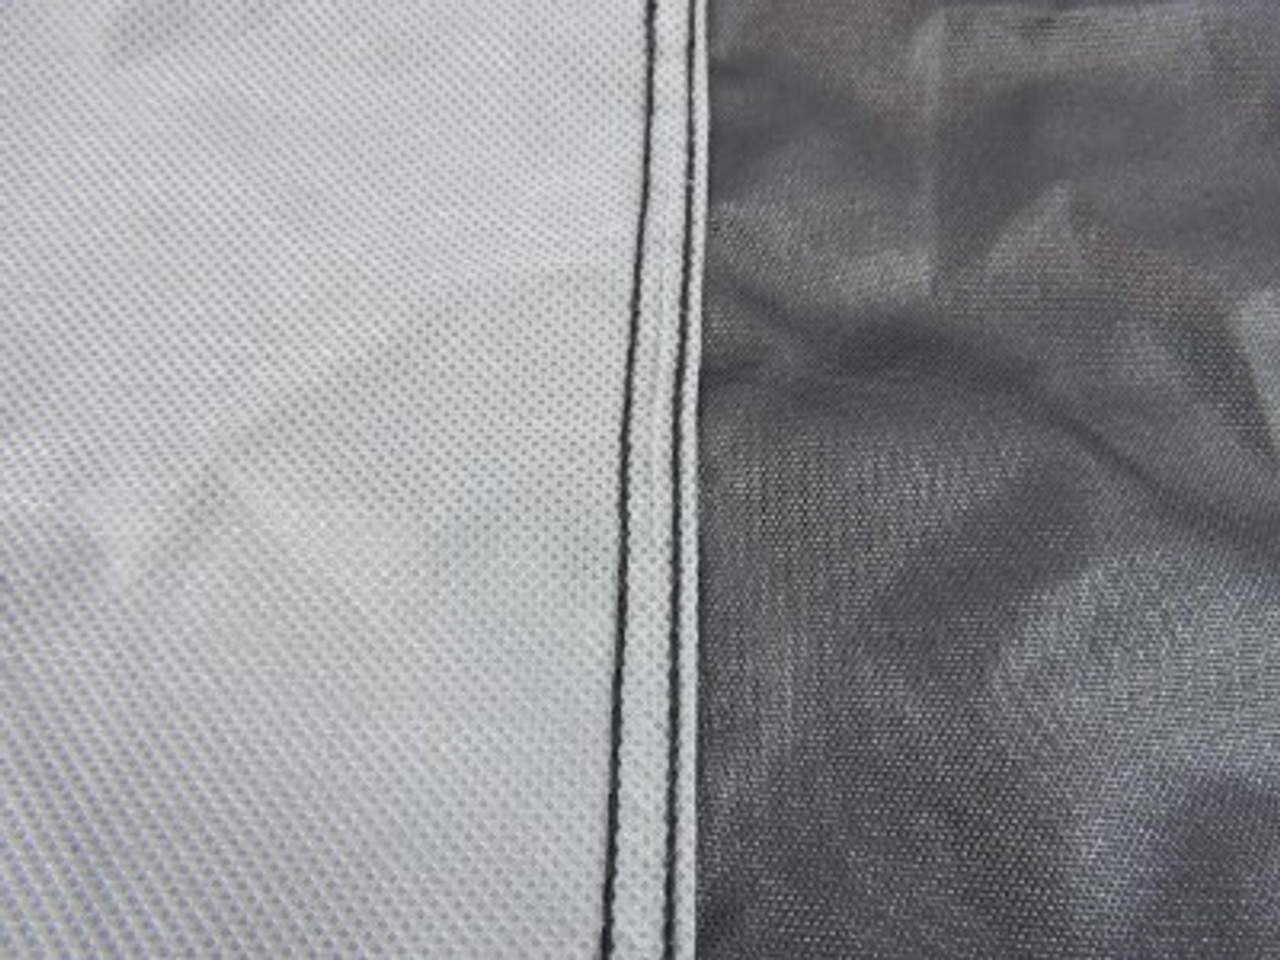 Nanook water resistant inner coating and soft non-woven liner to protect cowl and windscreen